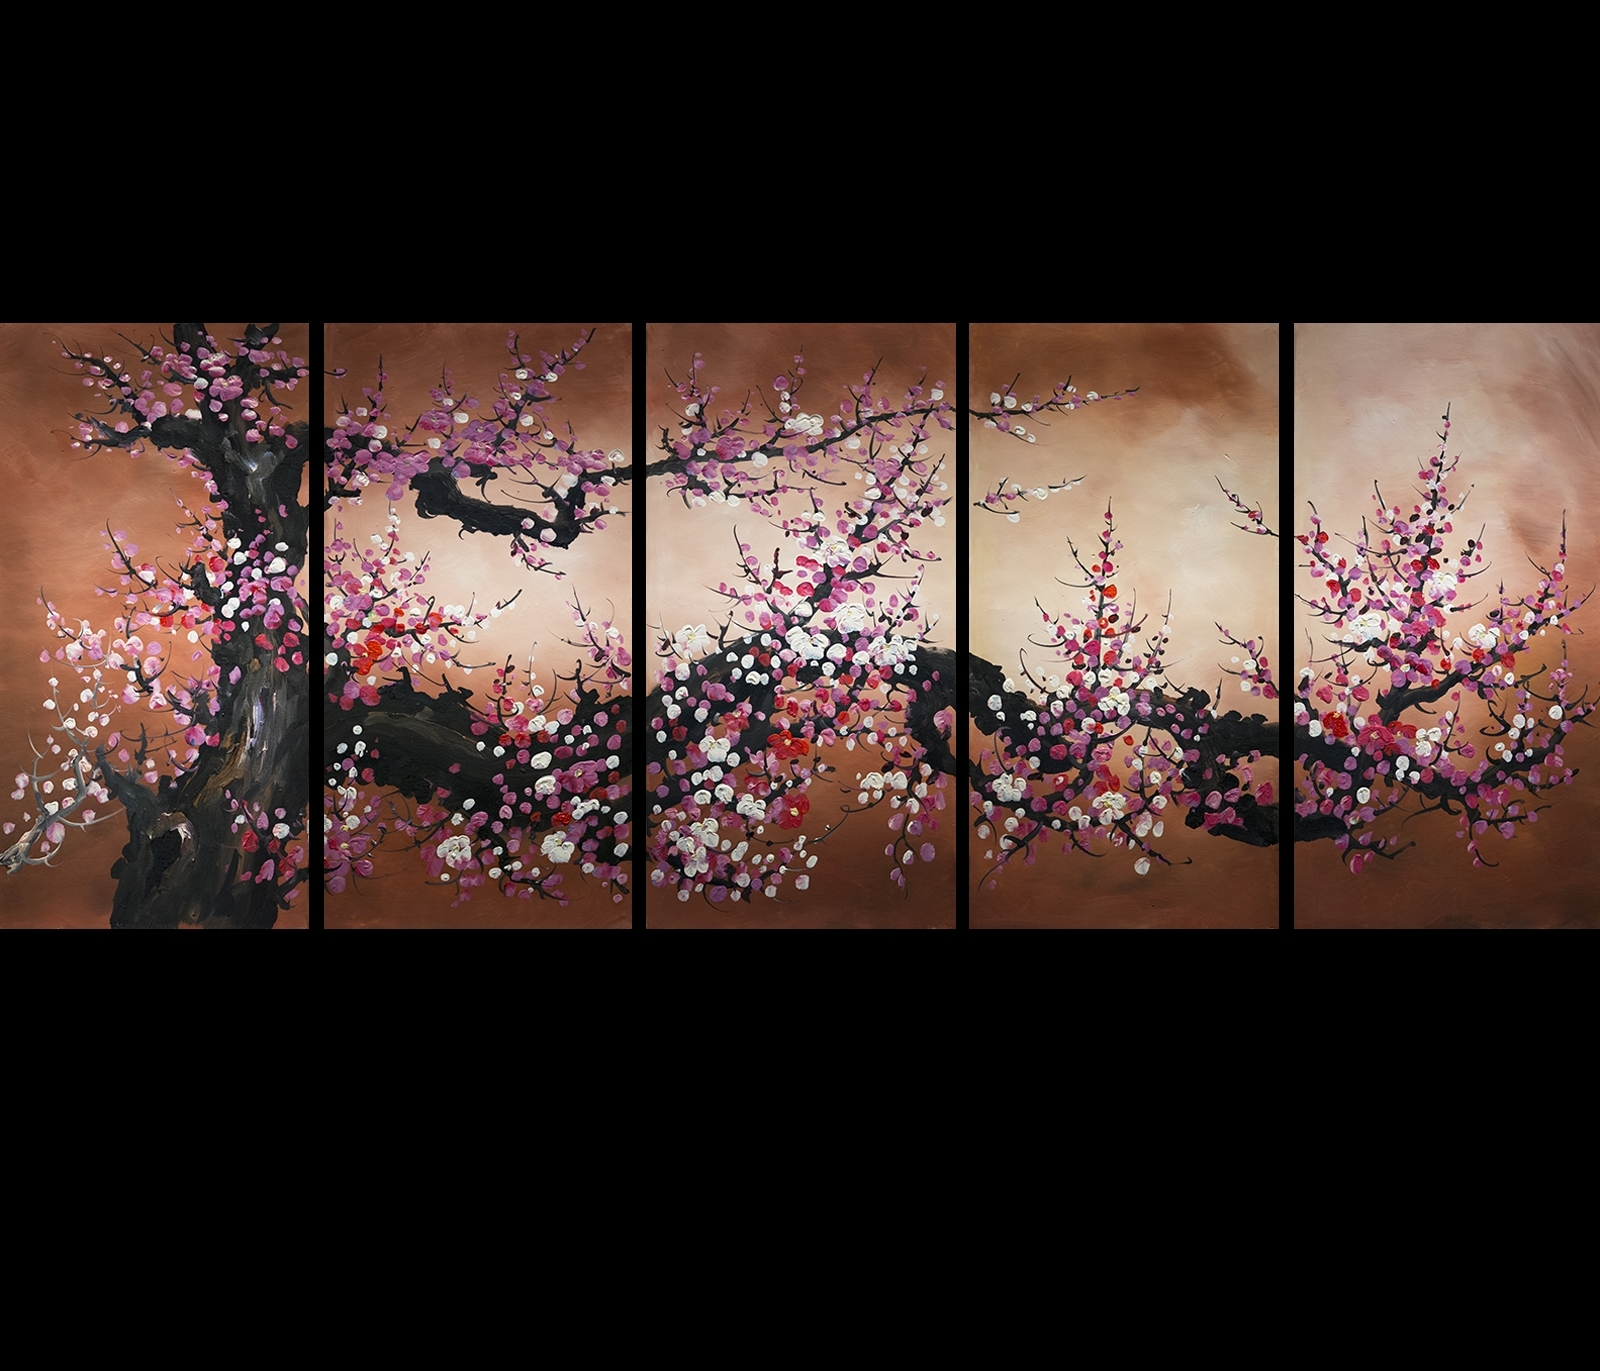 Chinese Feng Shui Painting Cherry Blossom Painting Flower Painting Regarding Recent Cherry Blossom Oil Painting Modern Abstract Wall Art (Gallery 6 of 15)